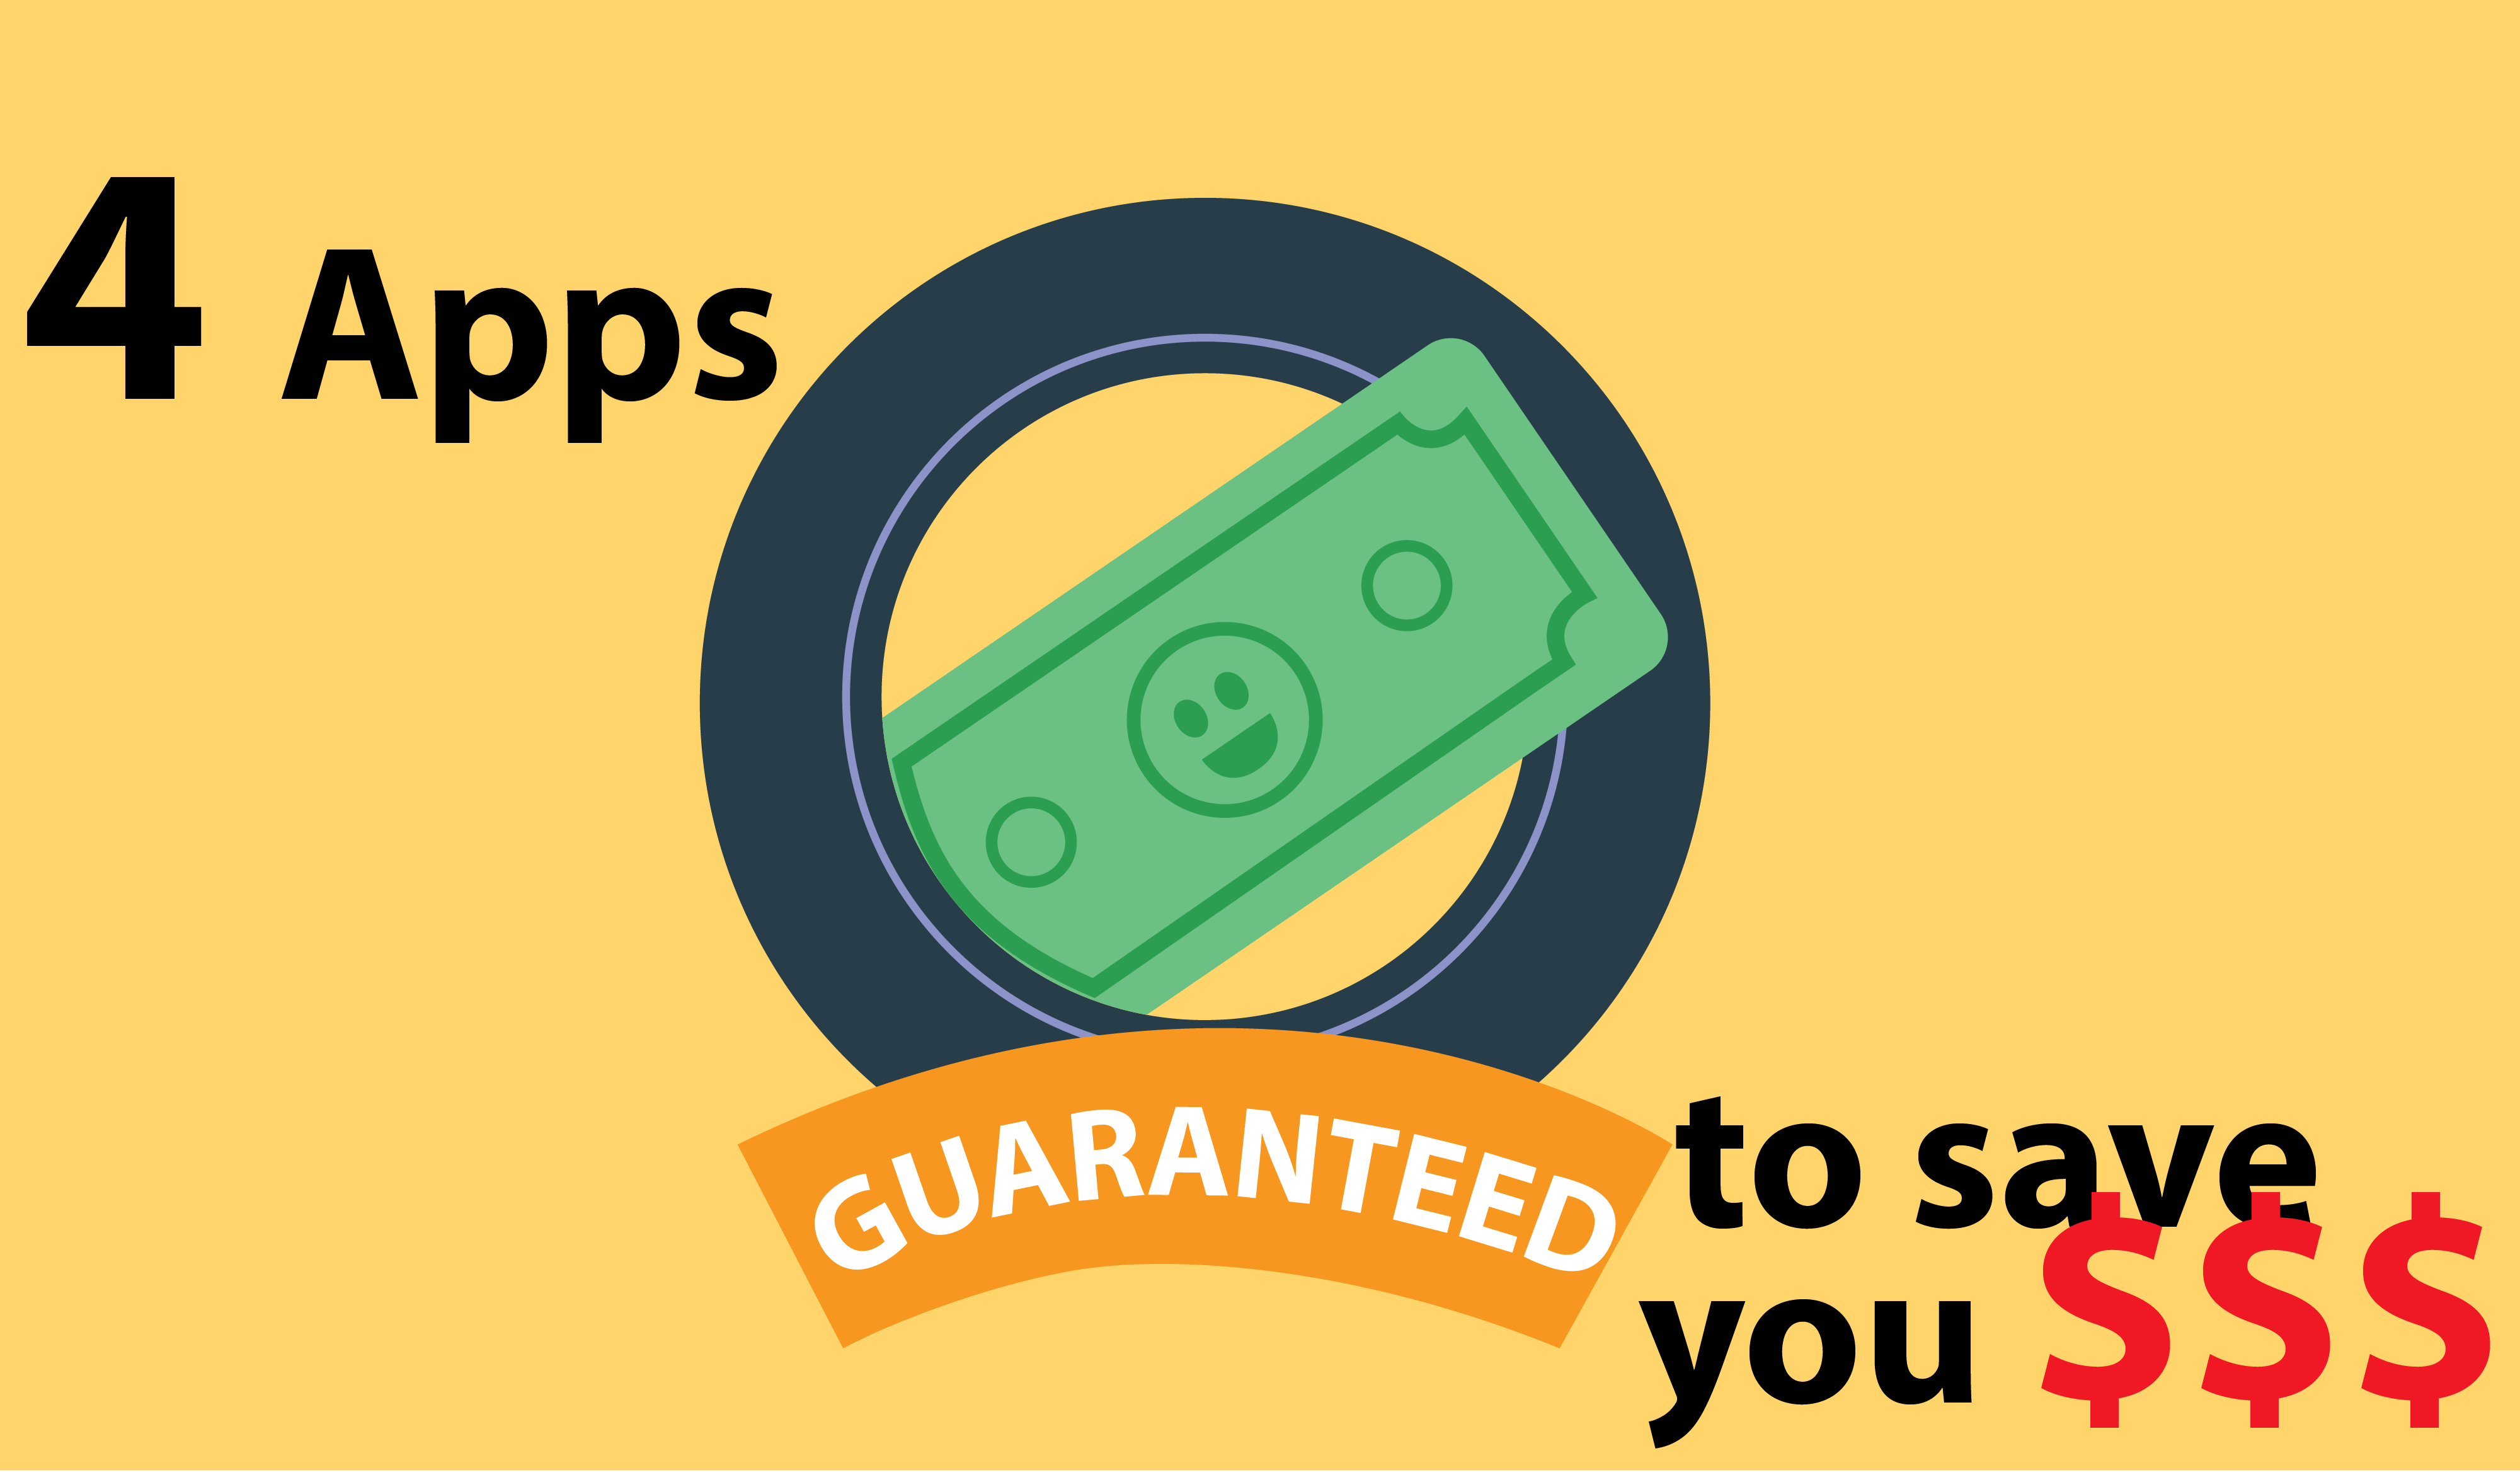 Top 4 Apps Guaranteed to save you money!